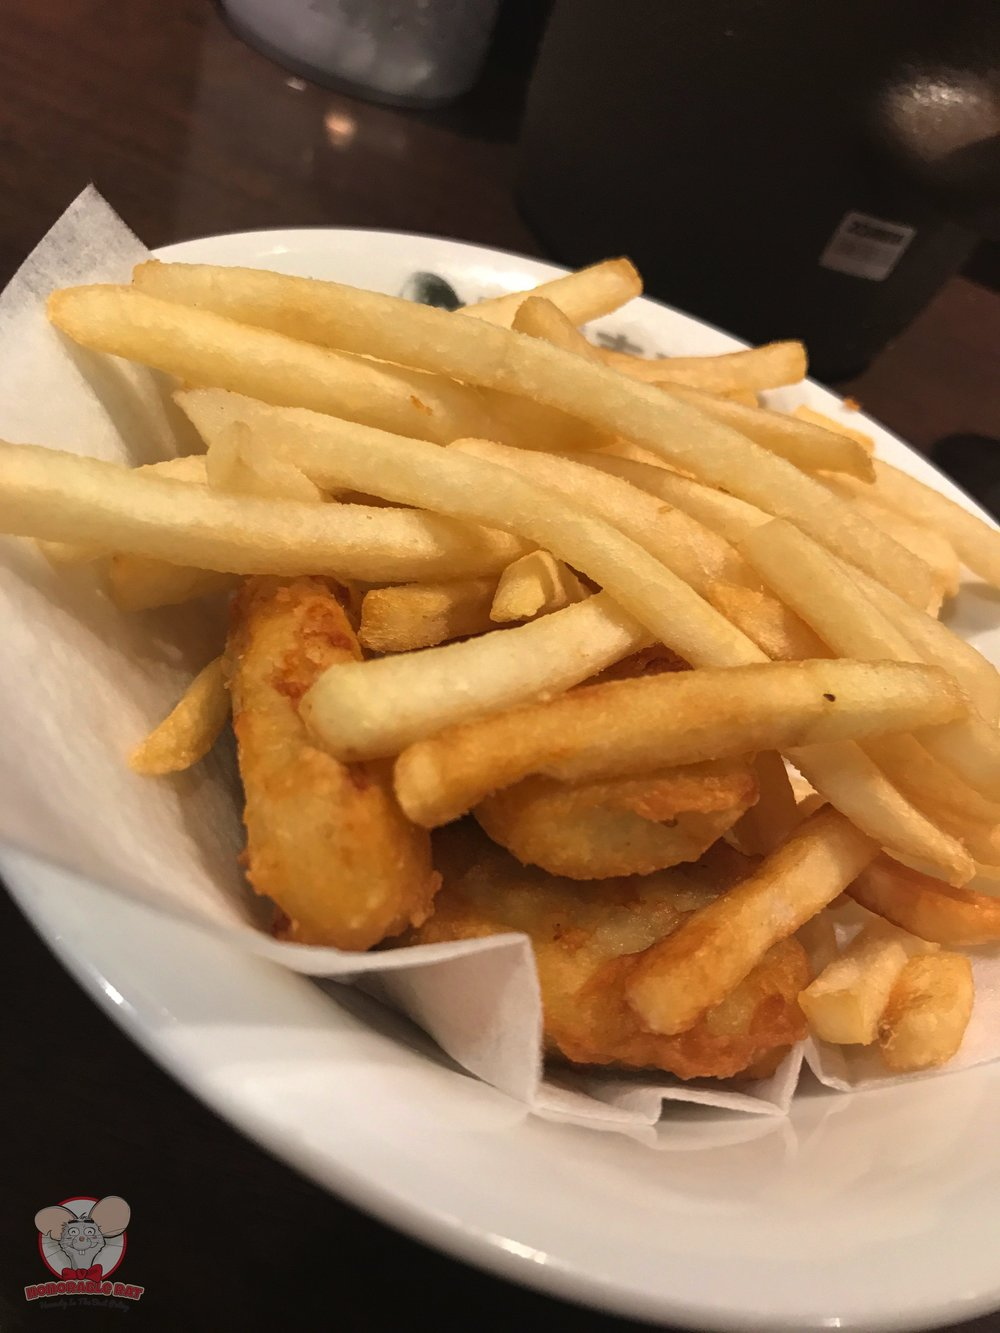 Fries and nuggets to deep into that amazing curry for 308 yen